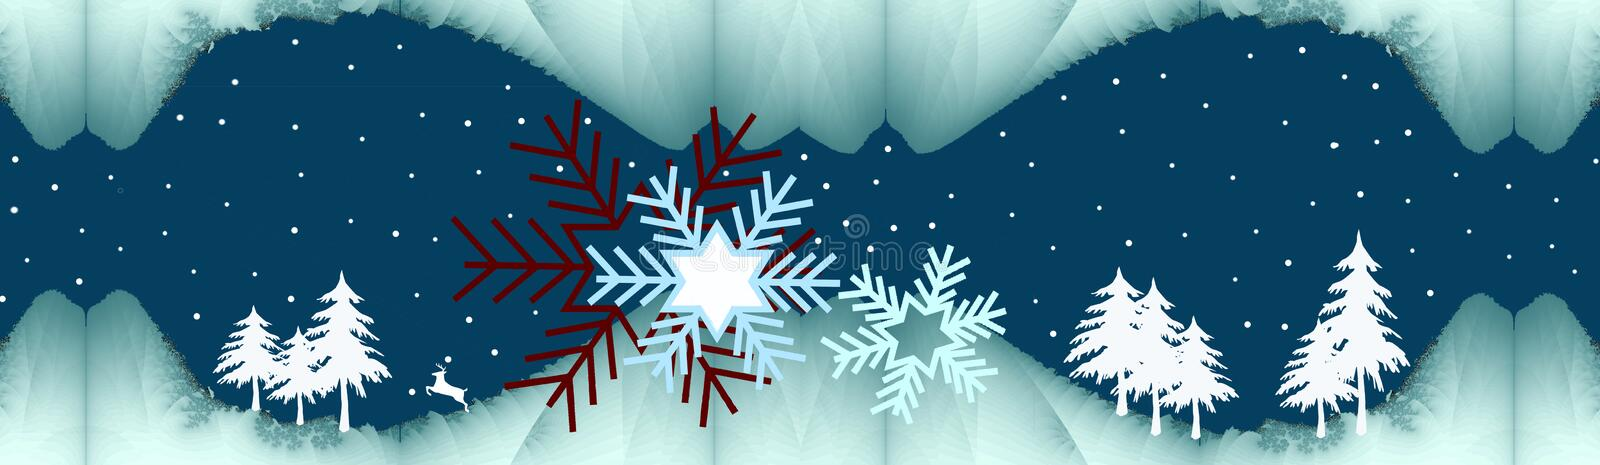 Silent winter night. Wintertime banner with little trees decorative snowflakes and a snowy sky royalty free illustration